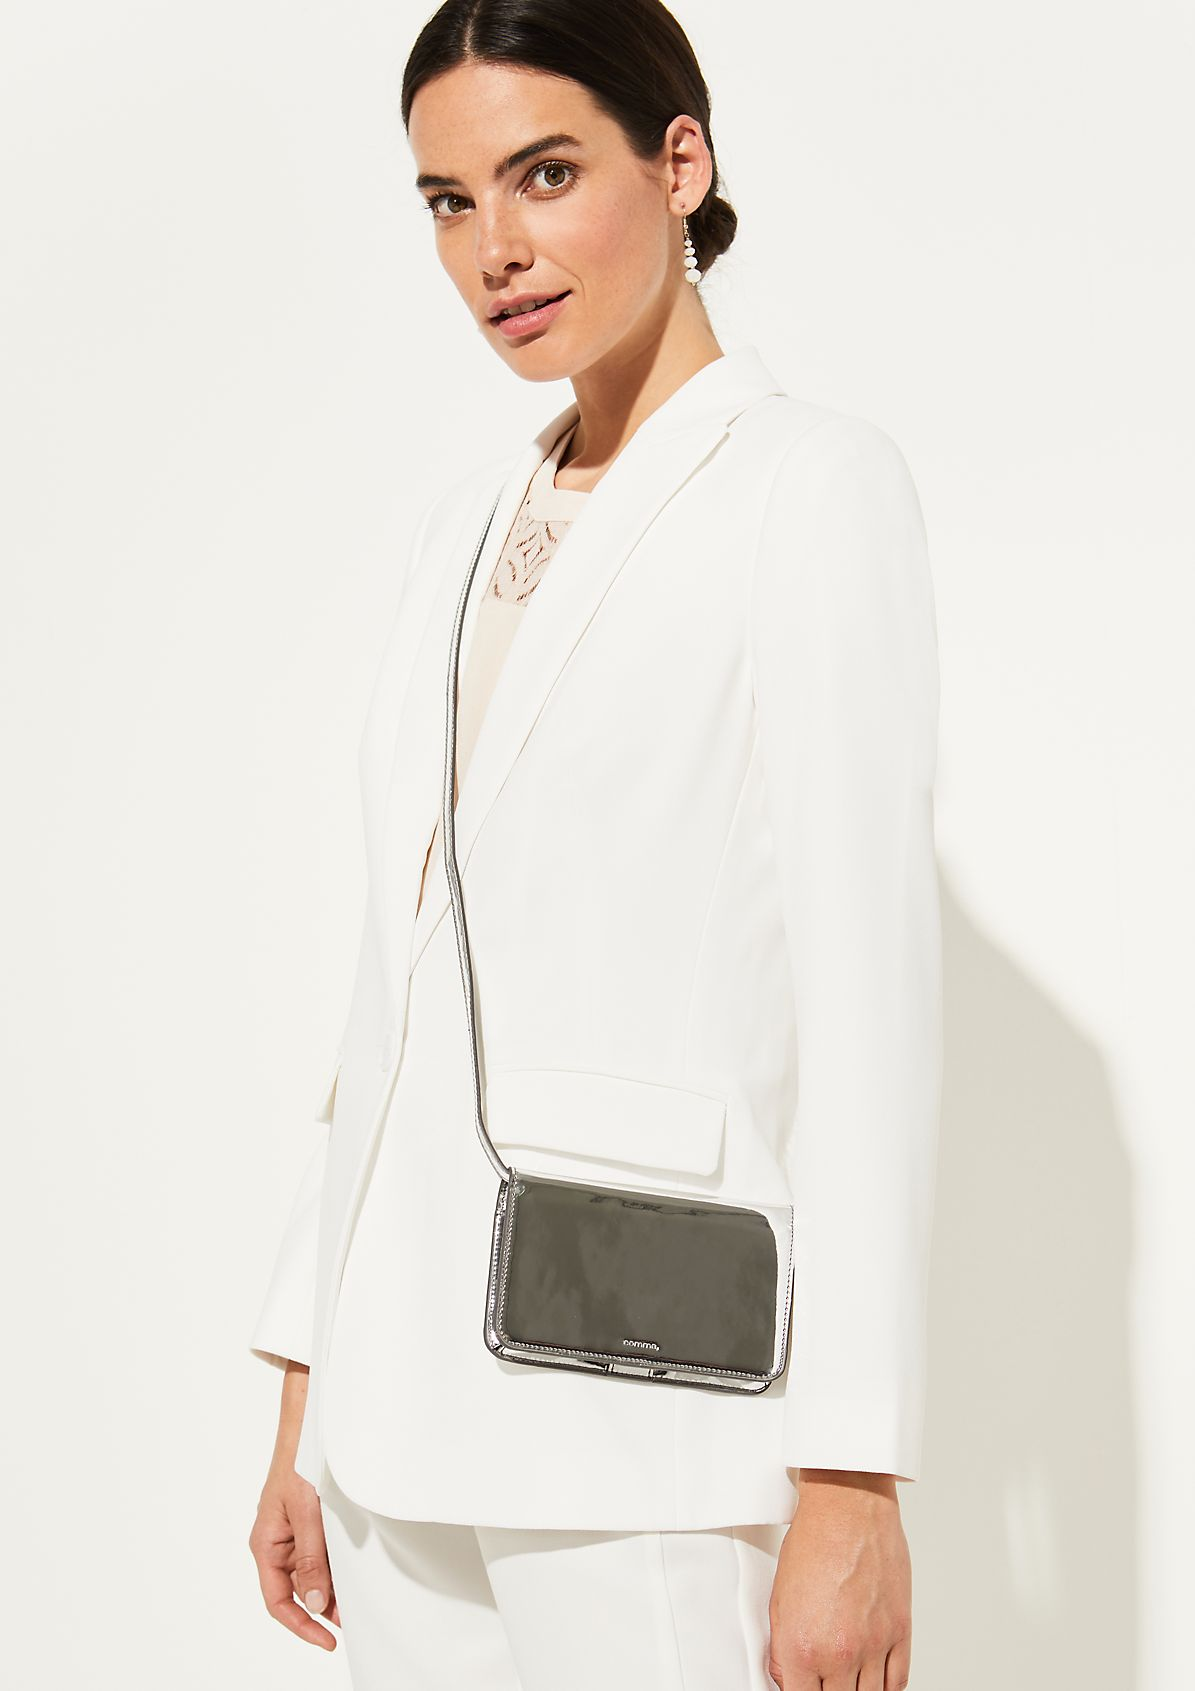 Silver-coloured, faux patent leather phone bag from comma